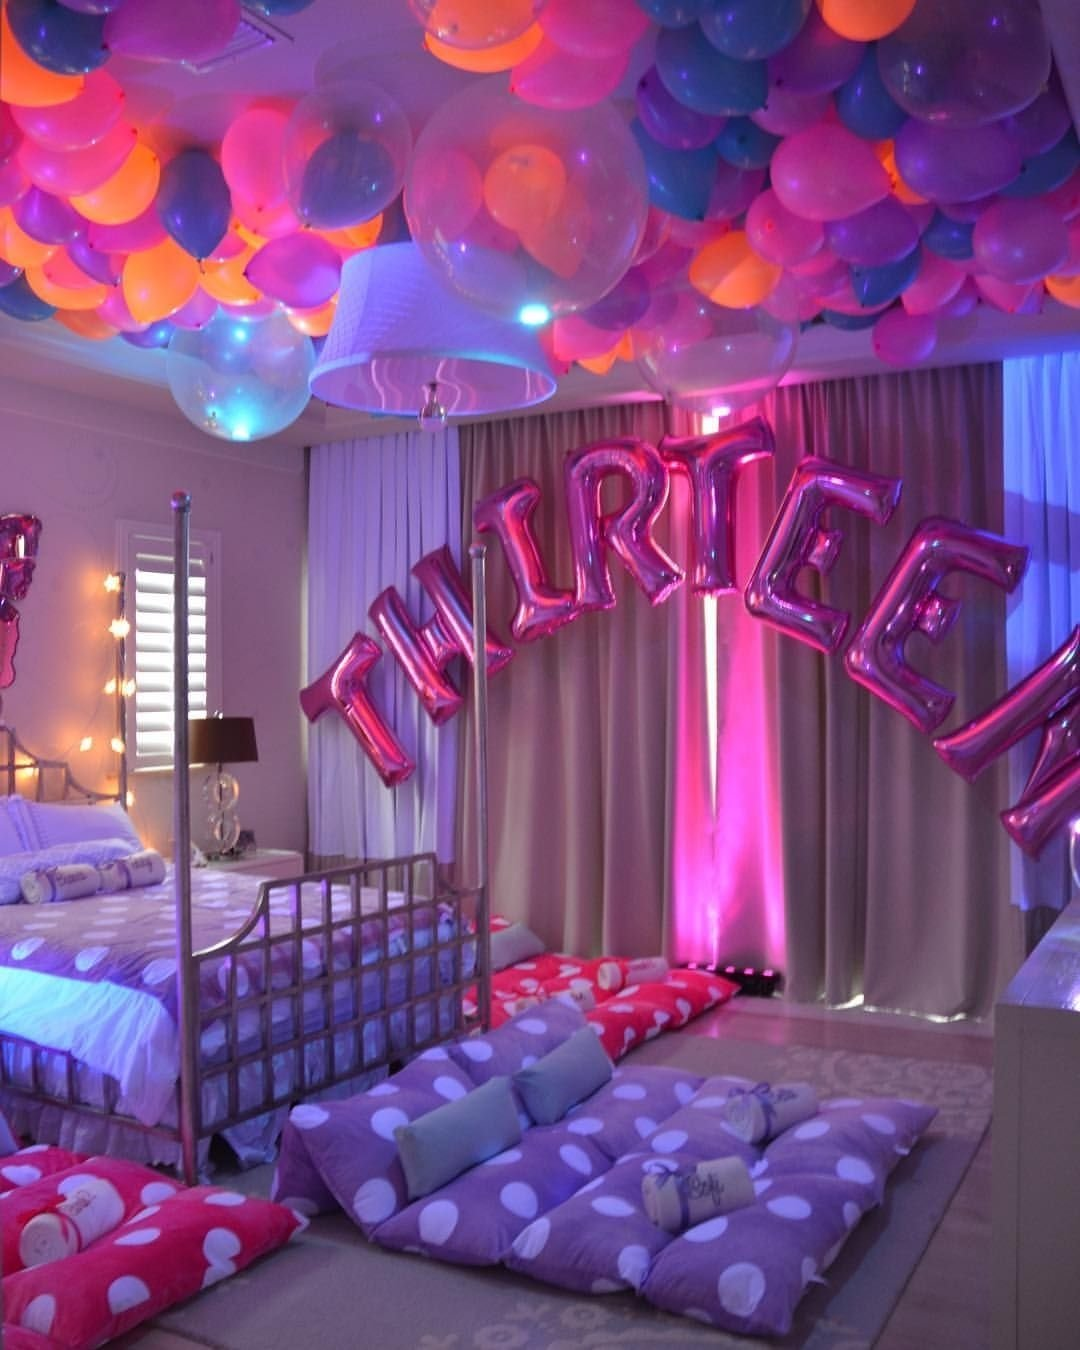 10 Nice 13 Year Old Birthday Party Ideas For Girls pinstacey refermat on hayley 13 xmas pinterest girls dream 5 2021